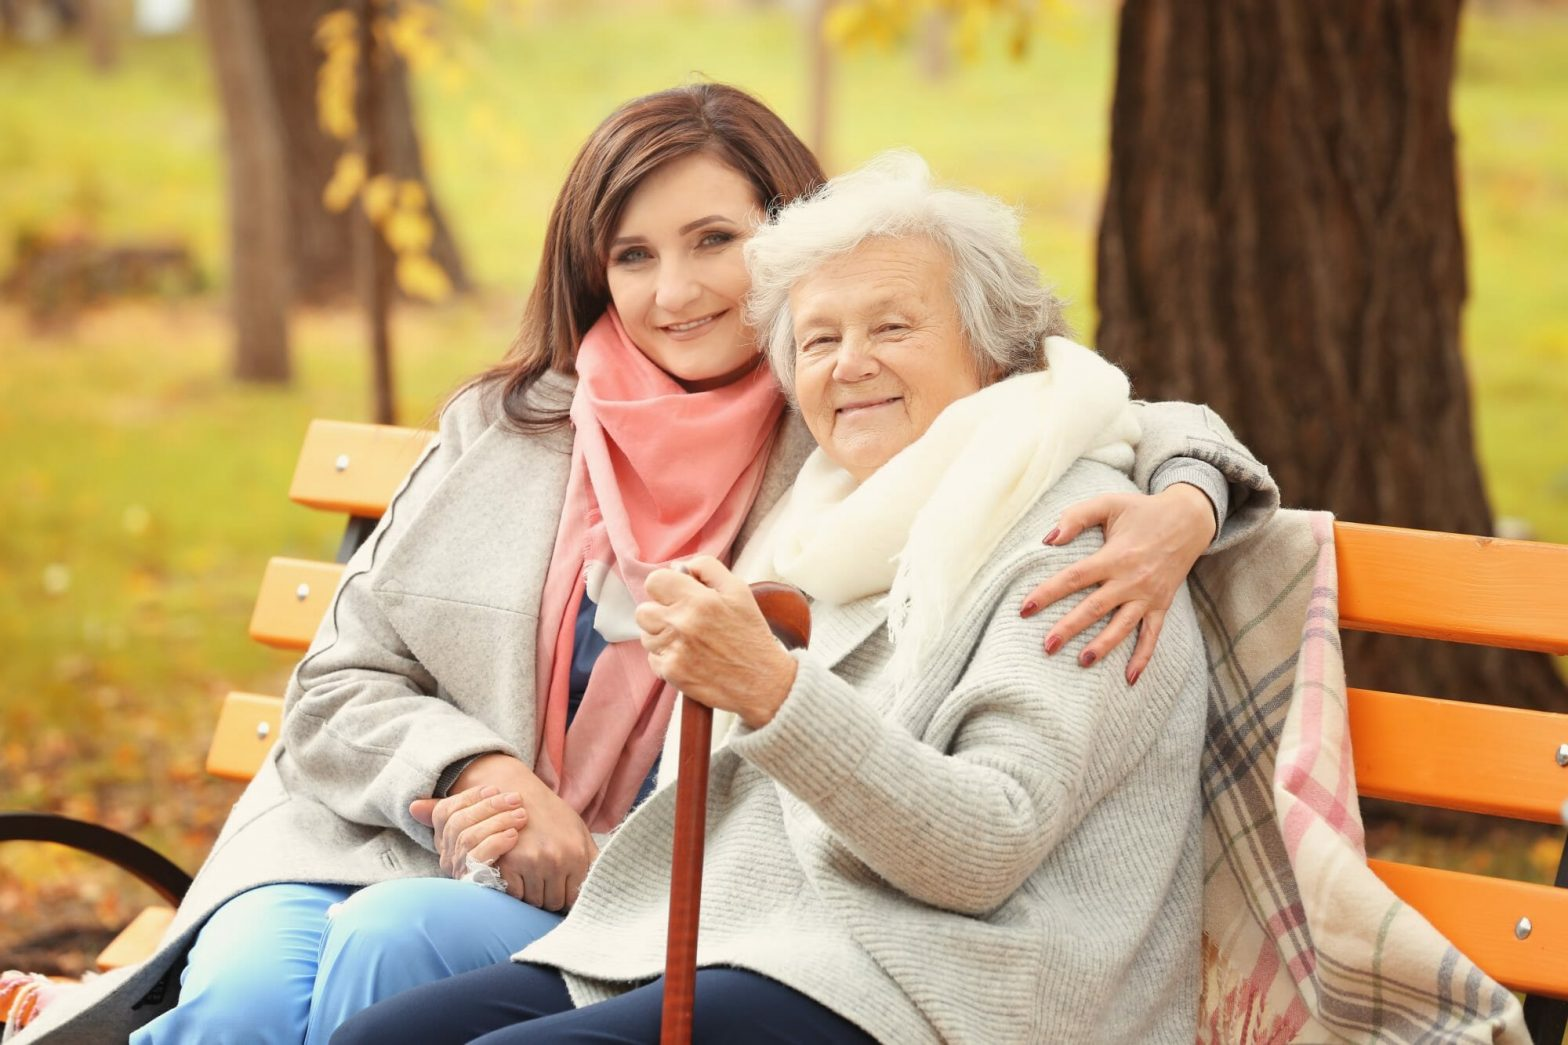 Pricing Structures in Assisted Living